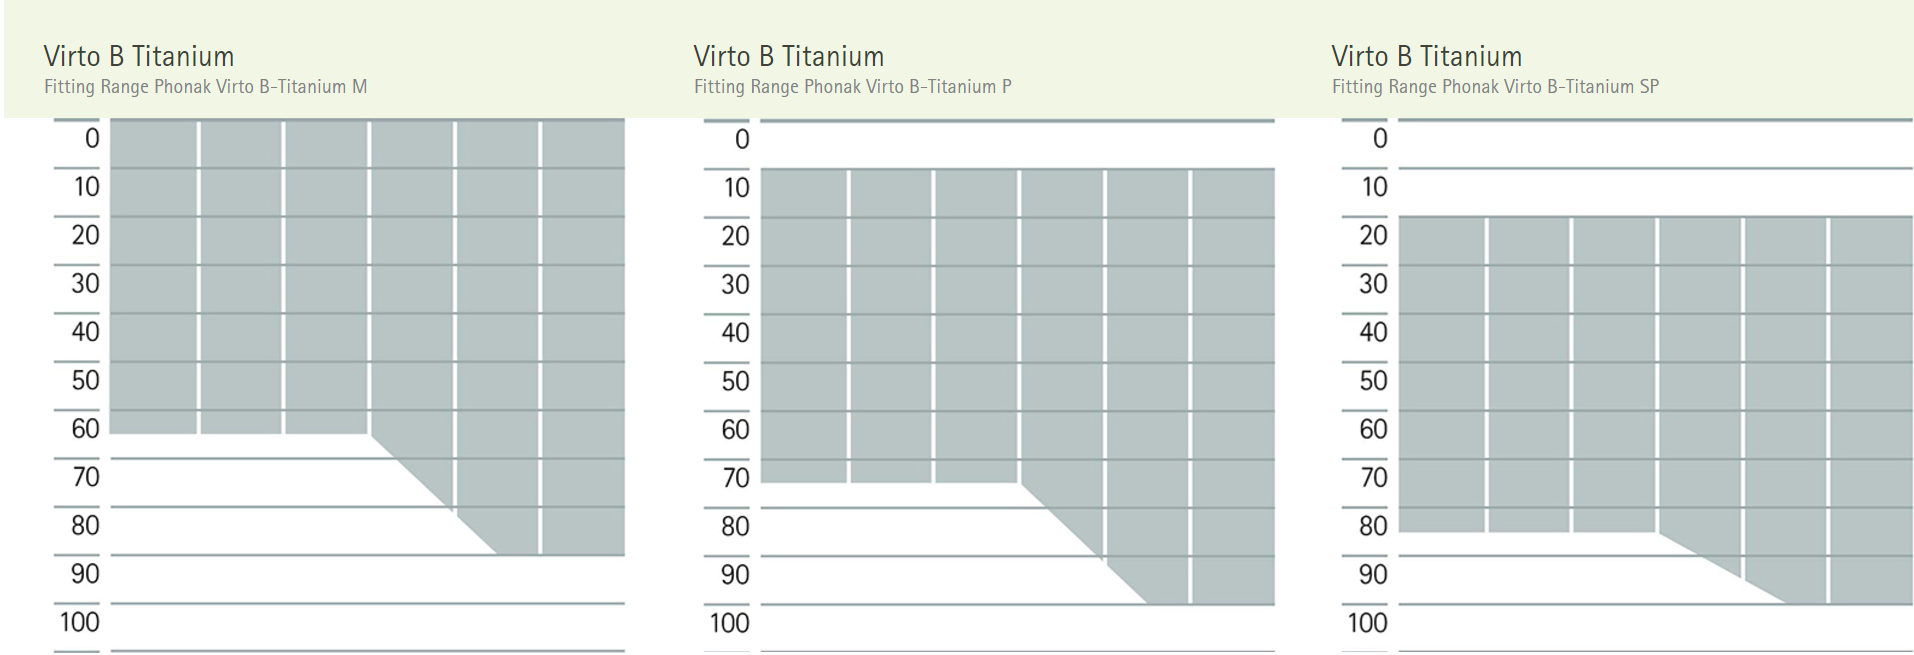 Phonak Titanium Power Levels